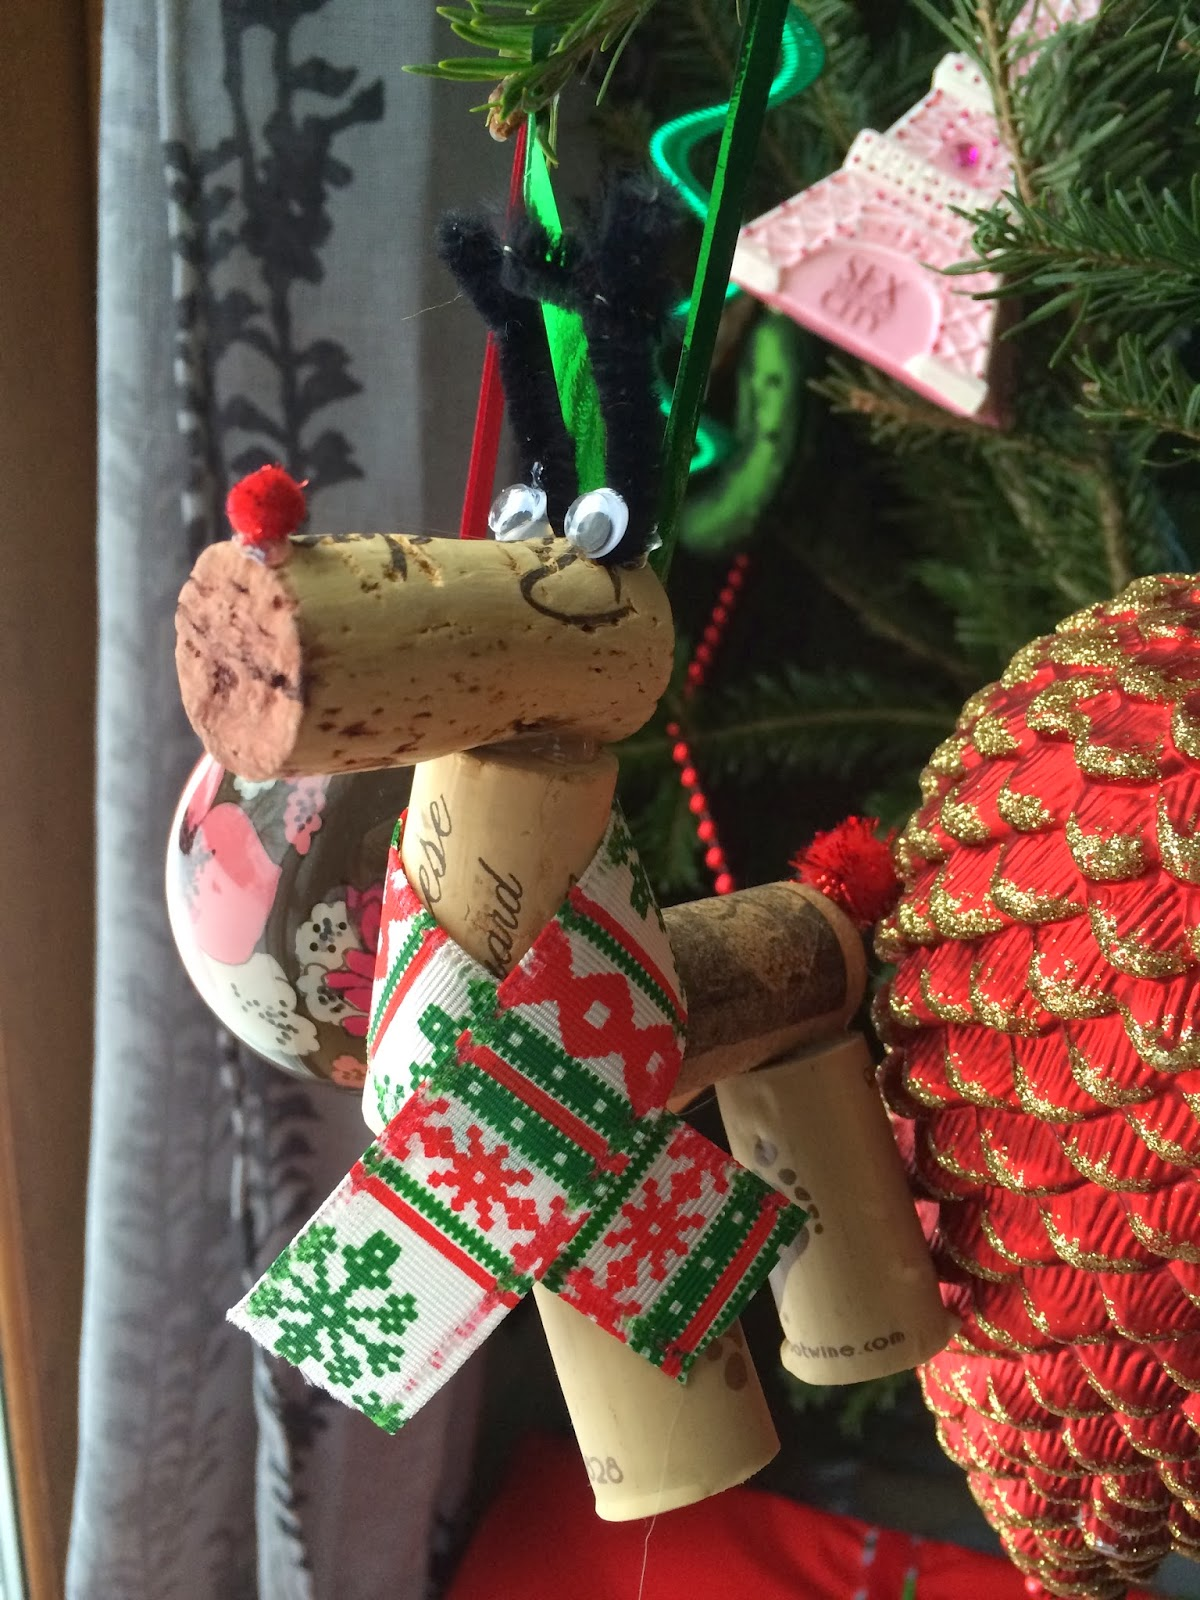 How to Make a Wine Cork Reindeer